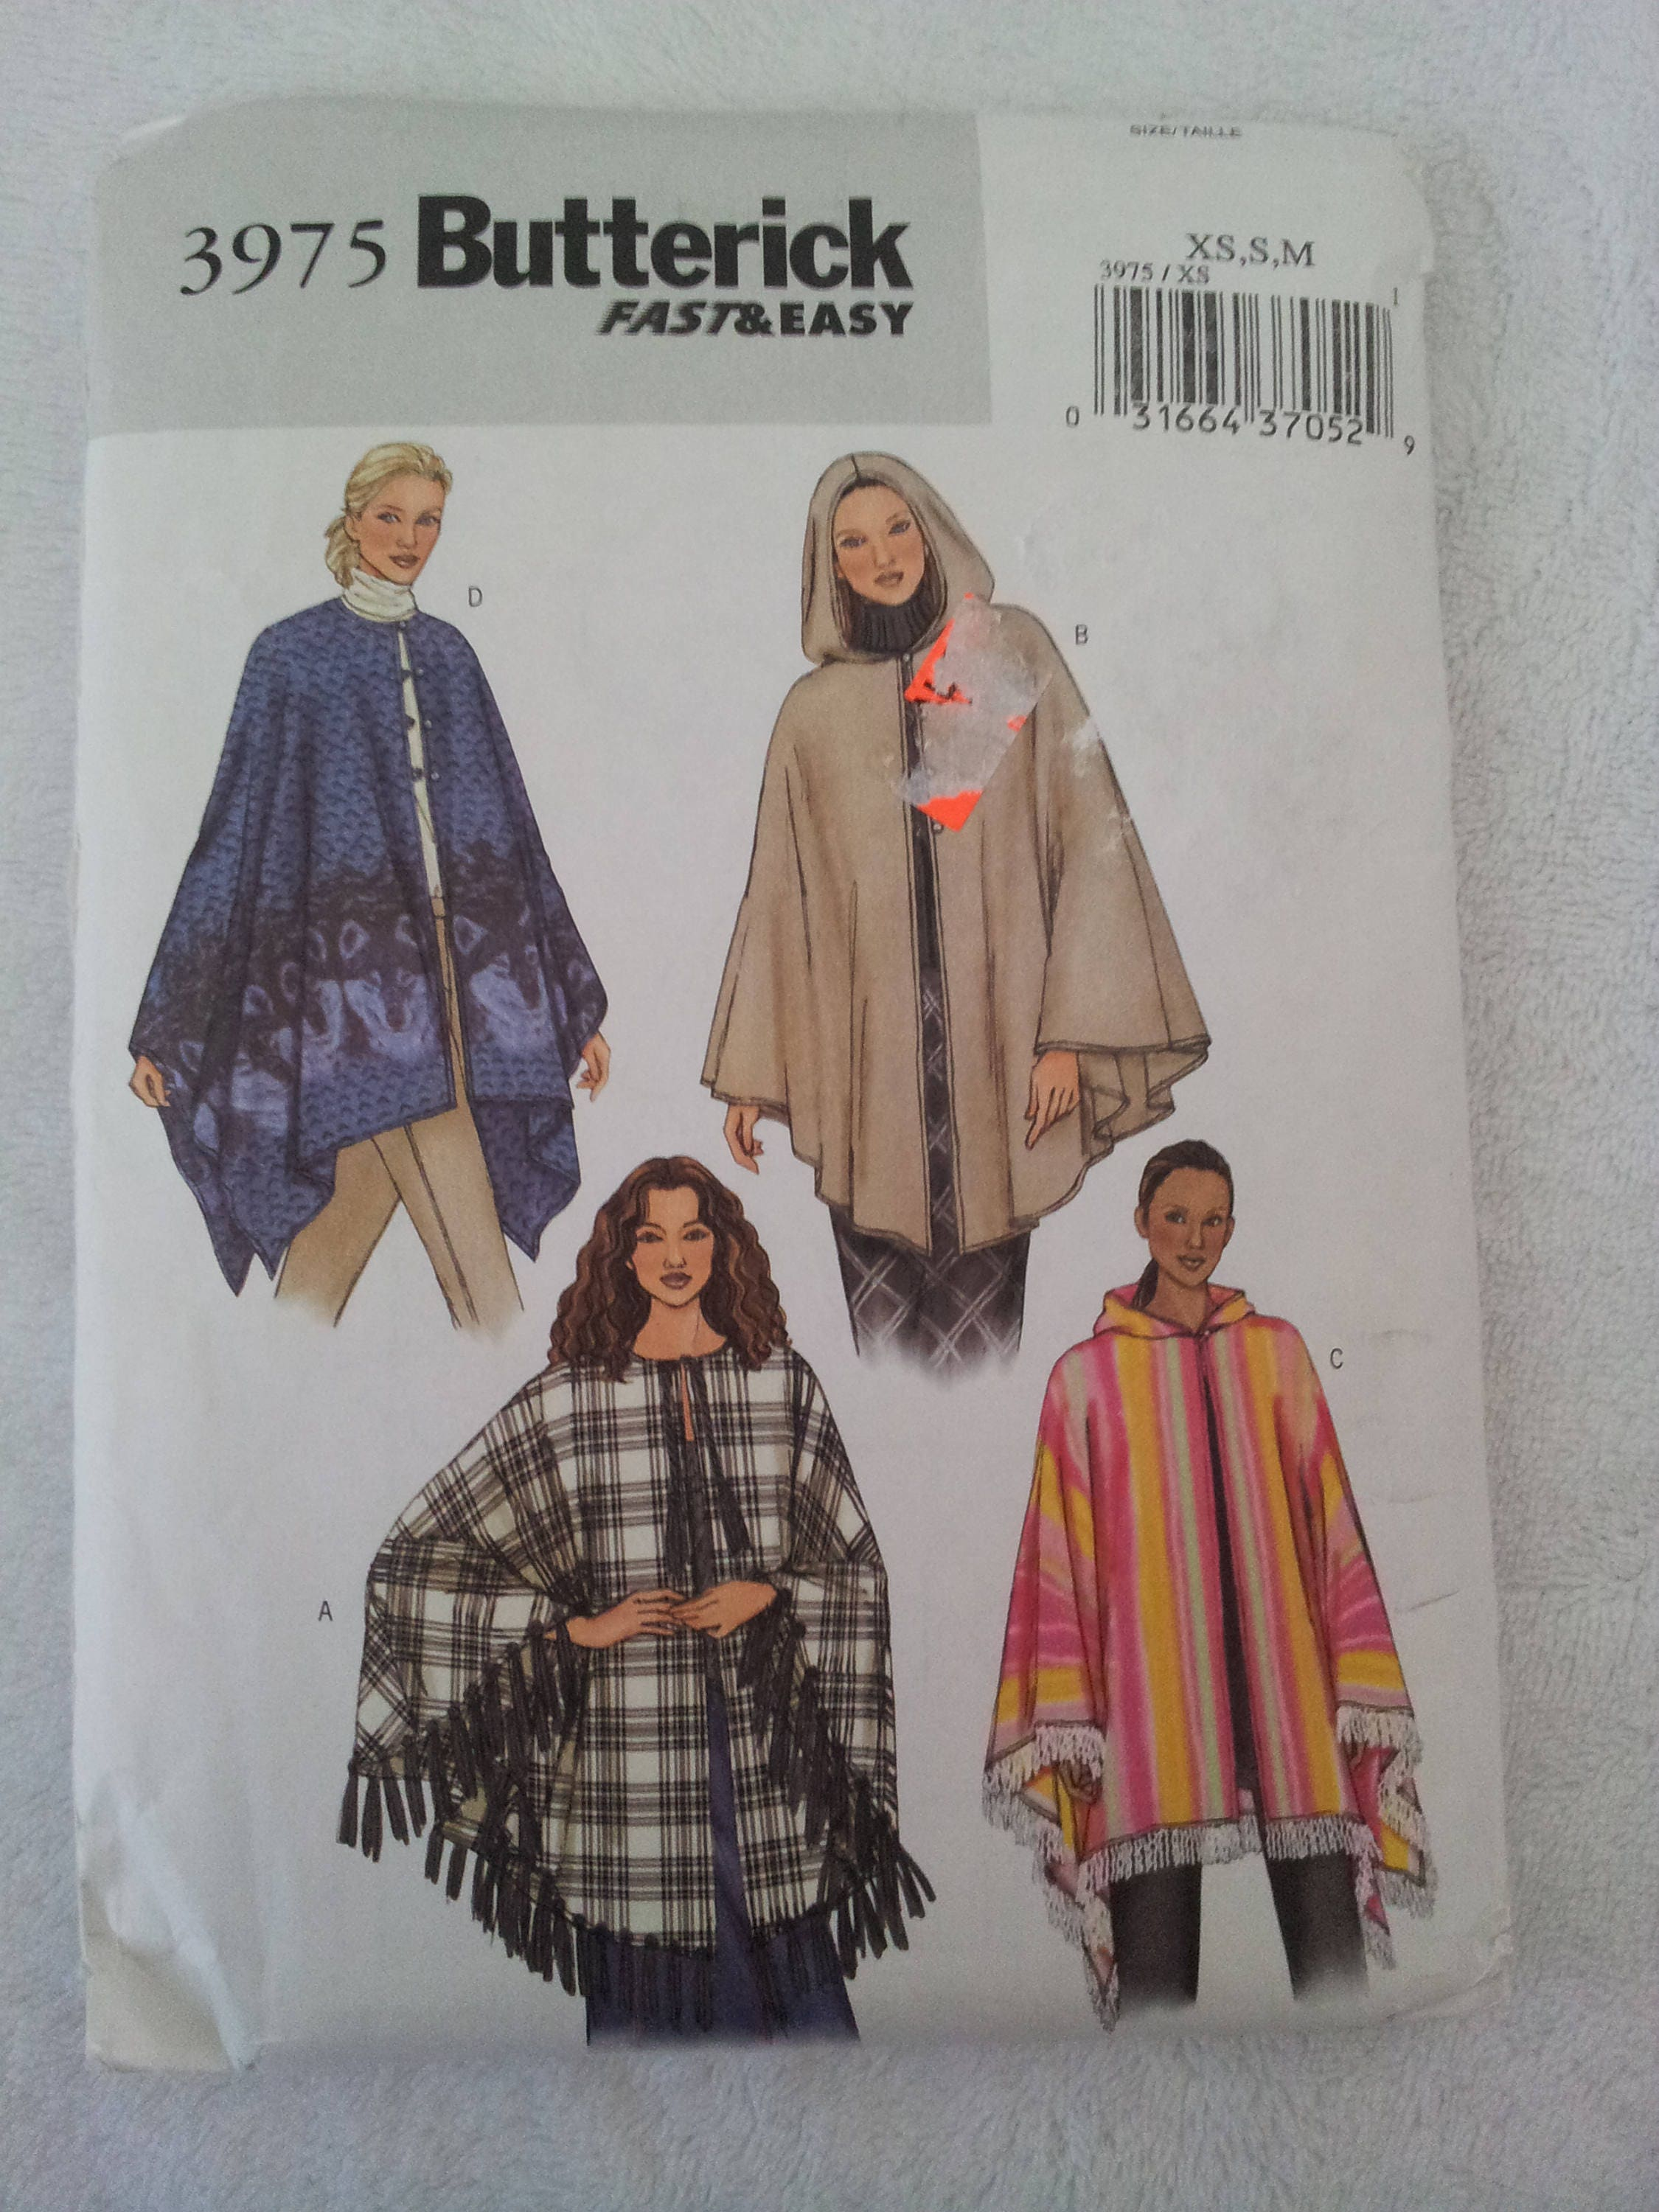 Schnittmuster Butterick 3975 macht Misses Ponchos in vier